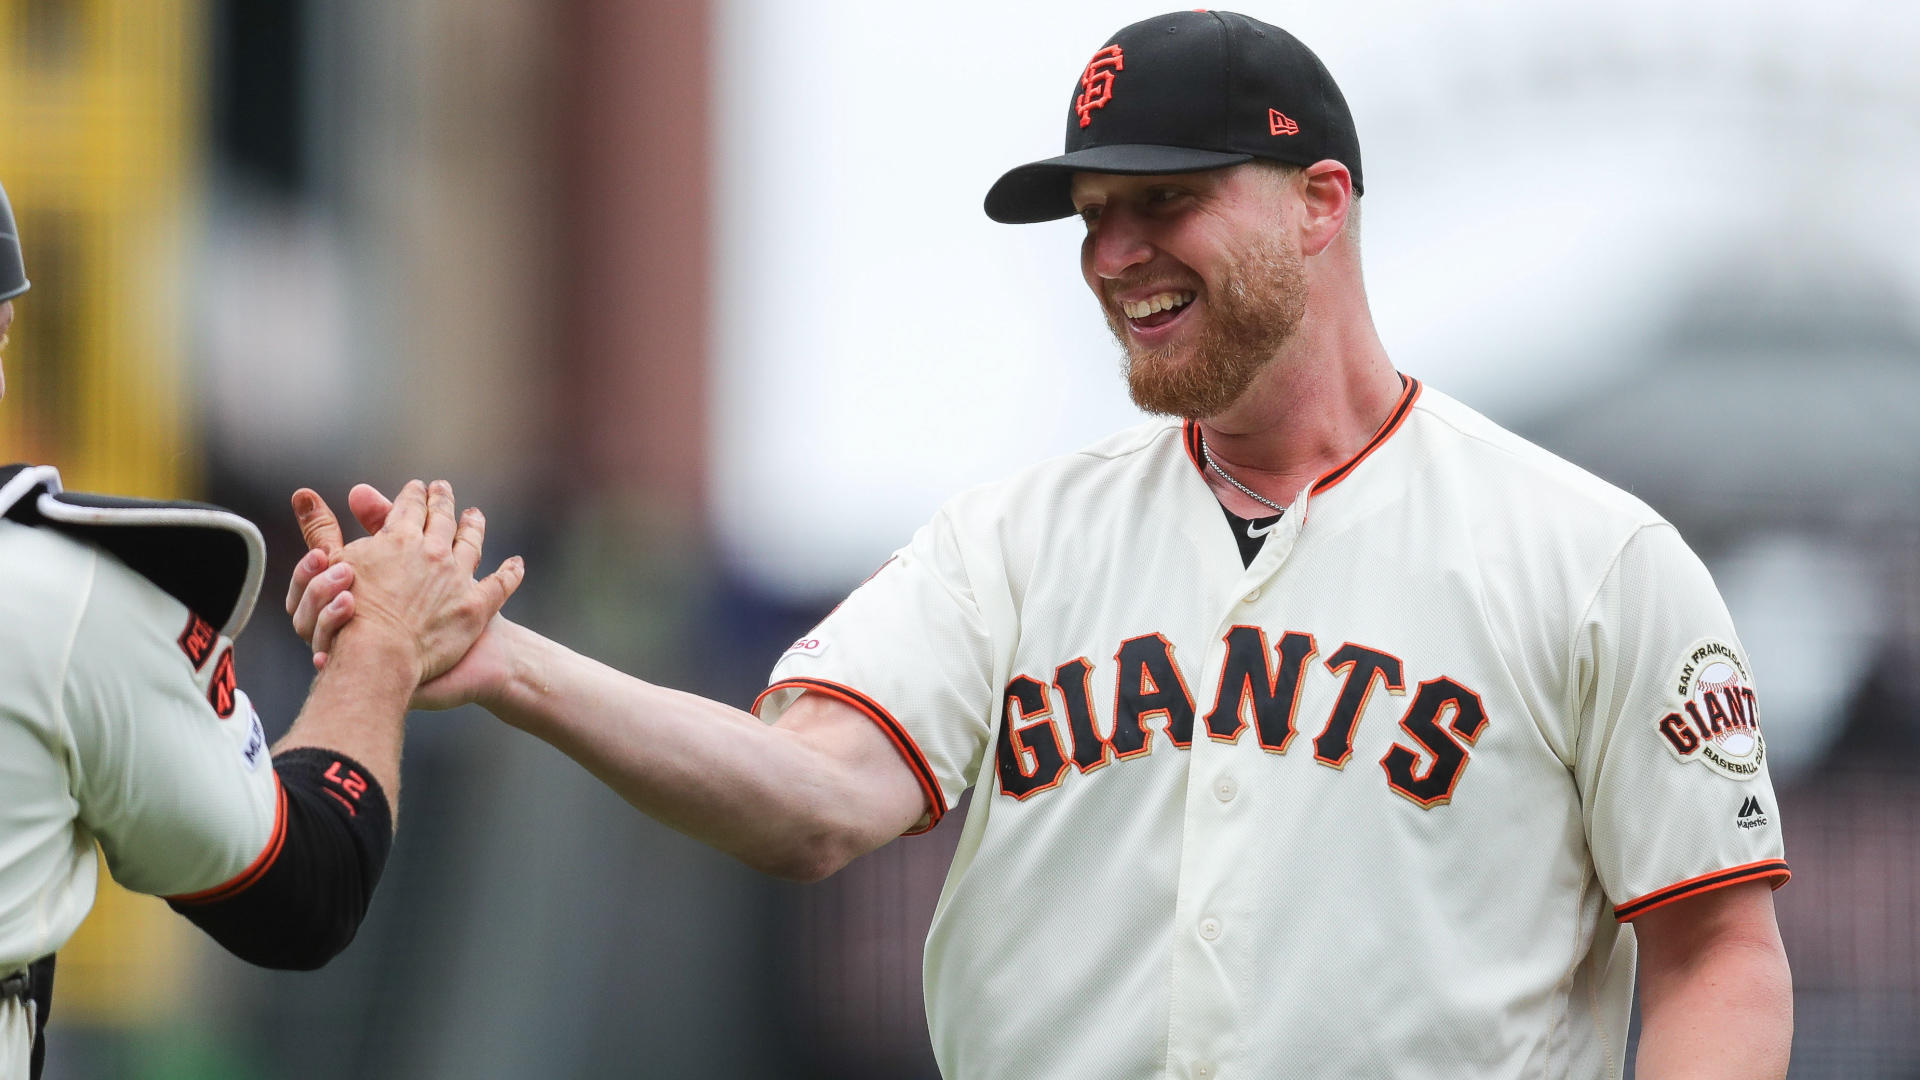 Dodgers vs. Giants odds, line: MLB picks, predictions for June 17 from model on 33-18 roll